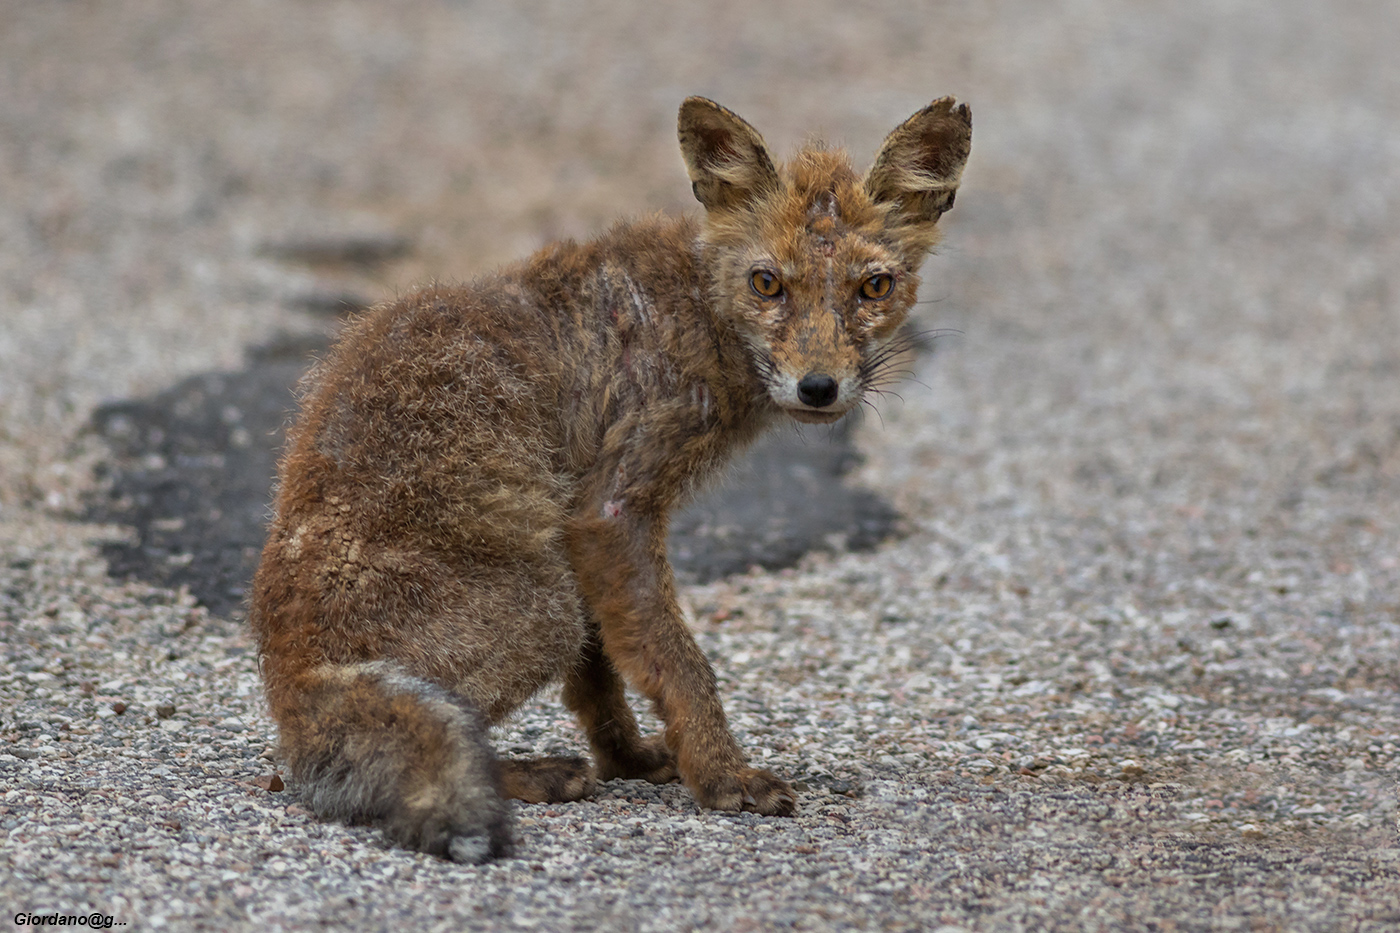 Fox with mange or scabies...